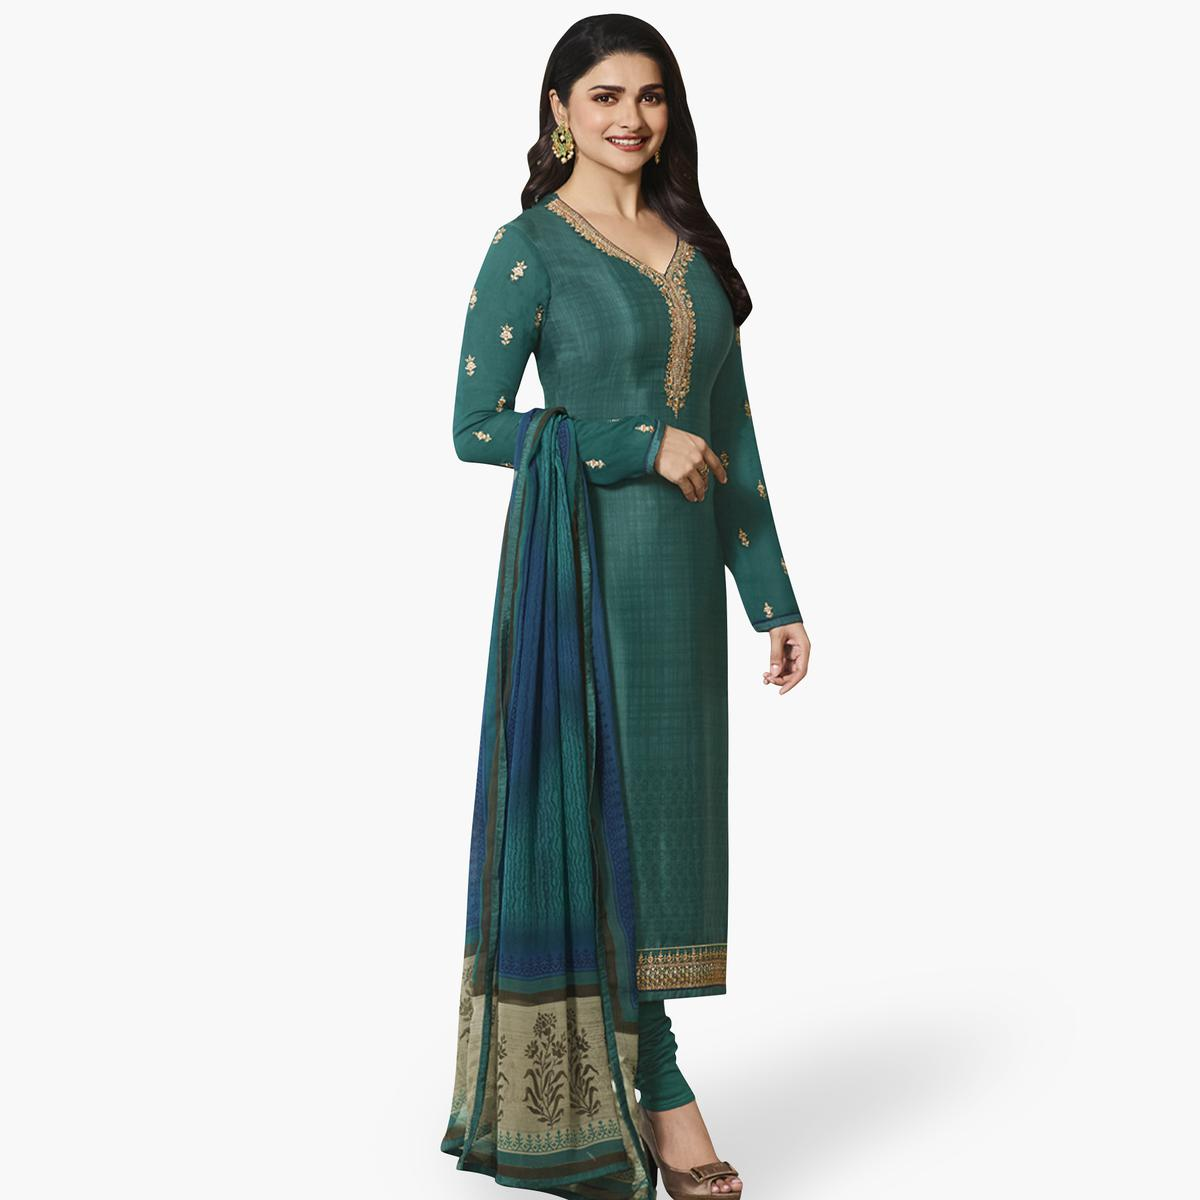 Intricate Rama Green Colored Partywear Embroidered Crepe Suit